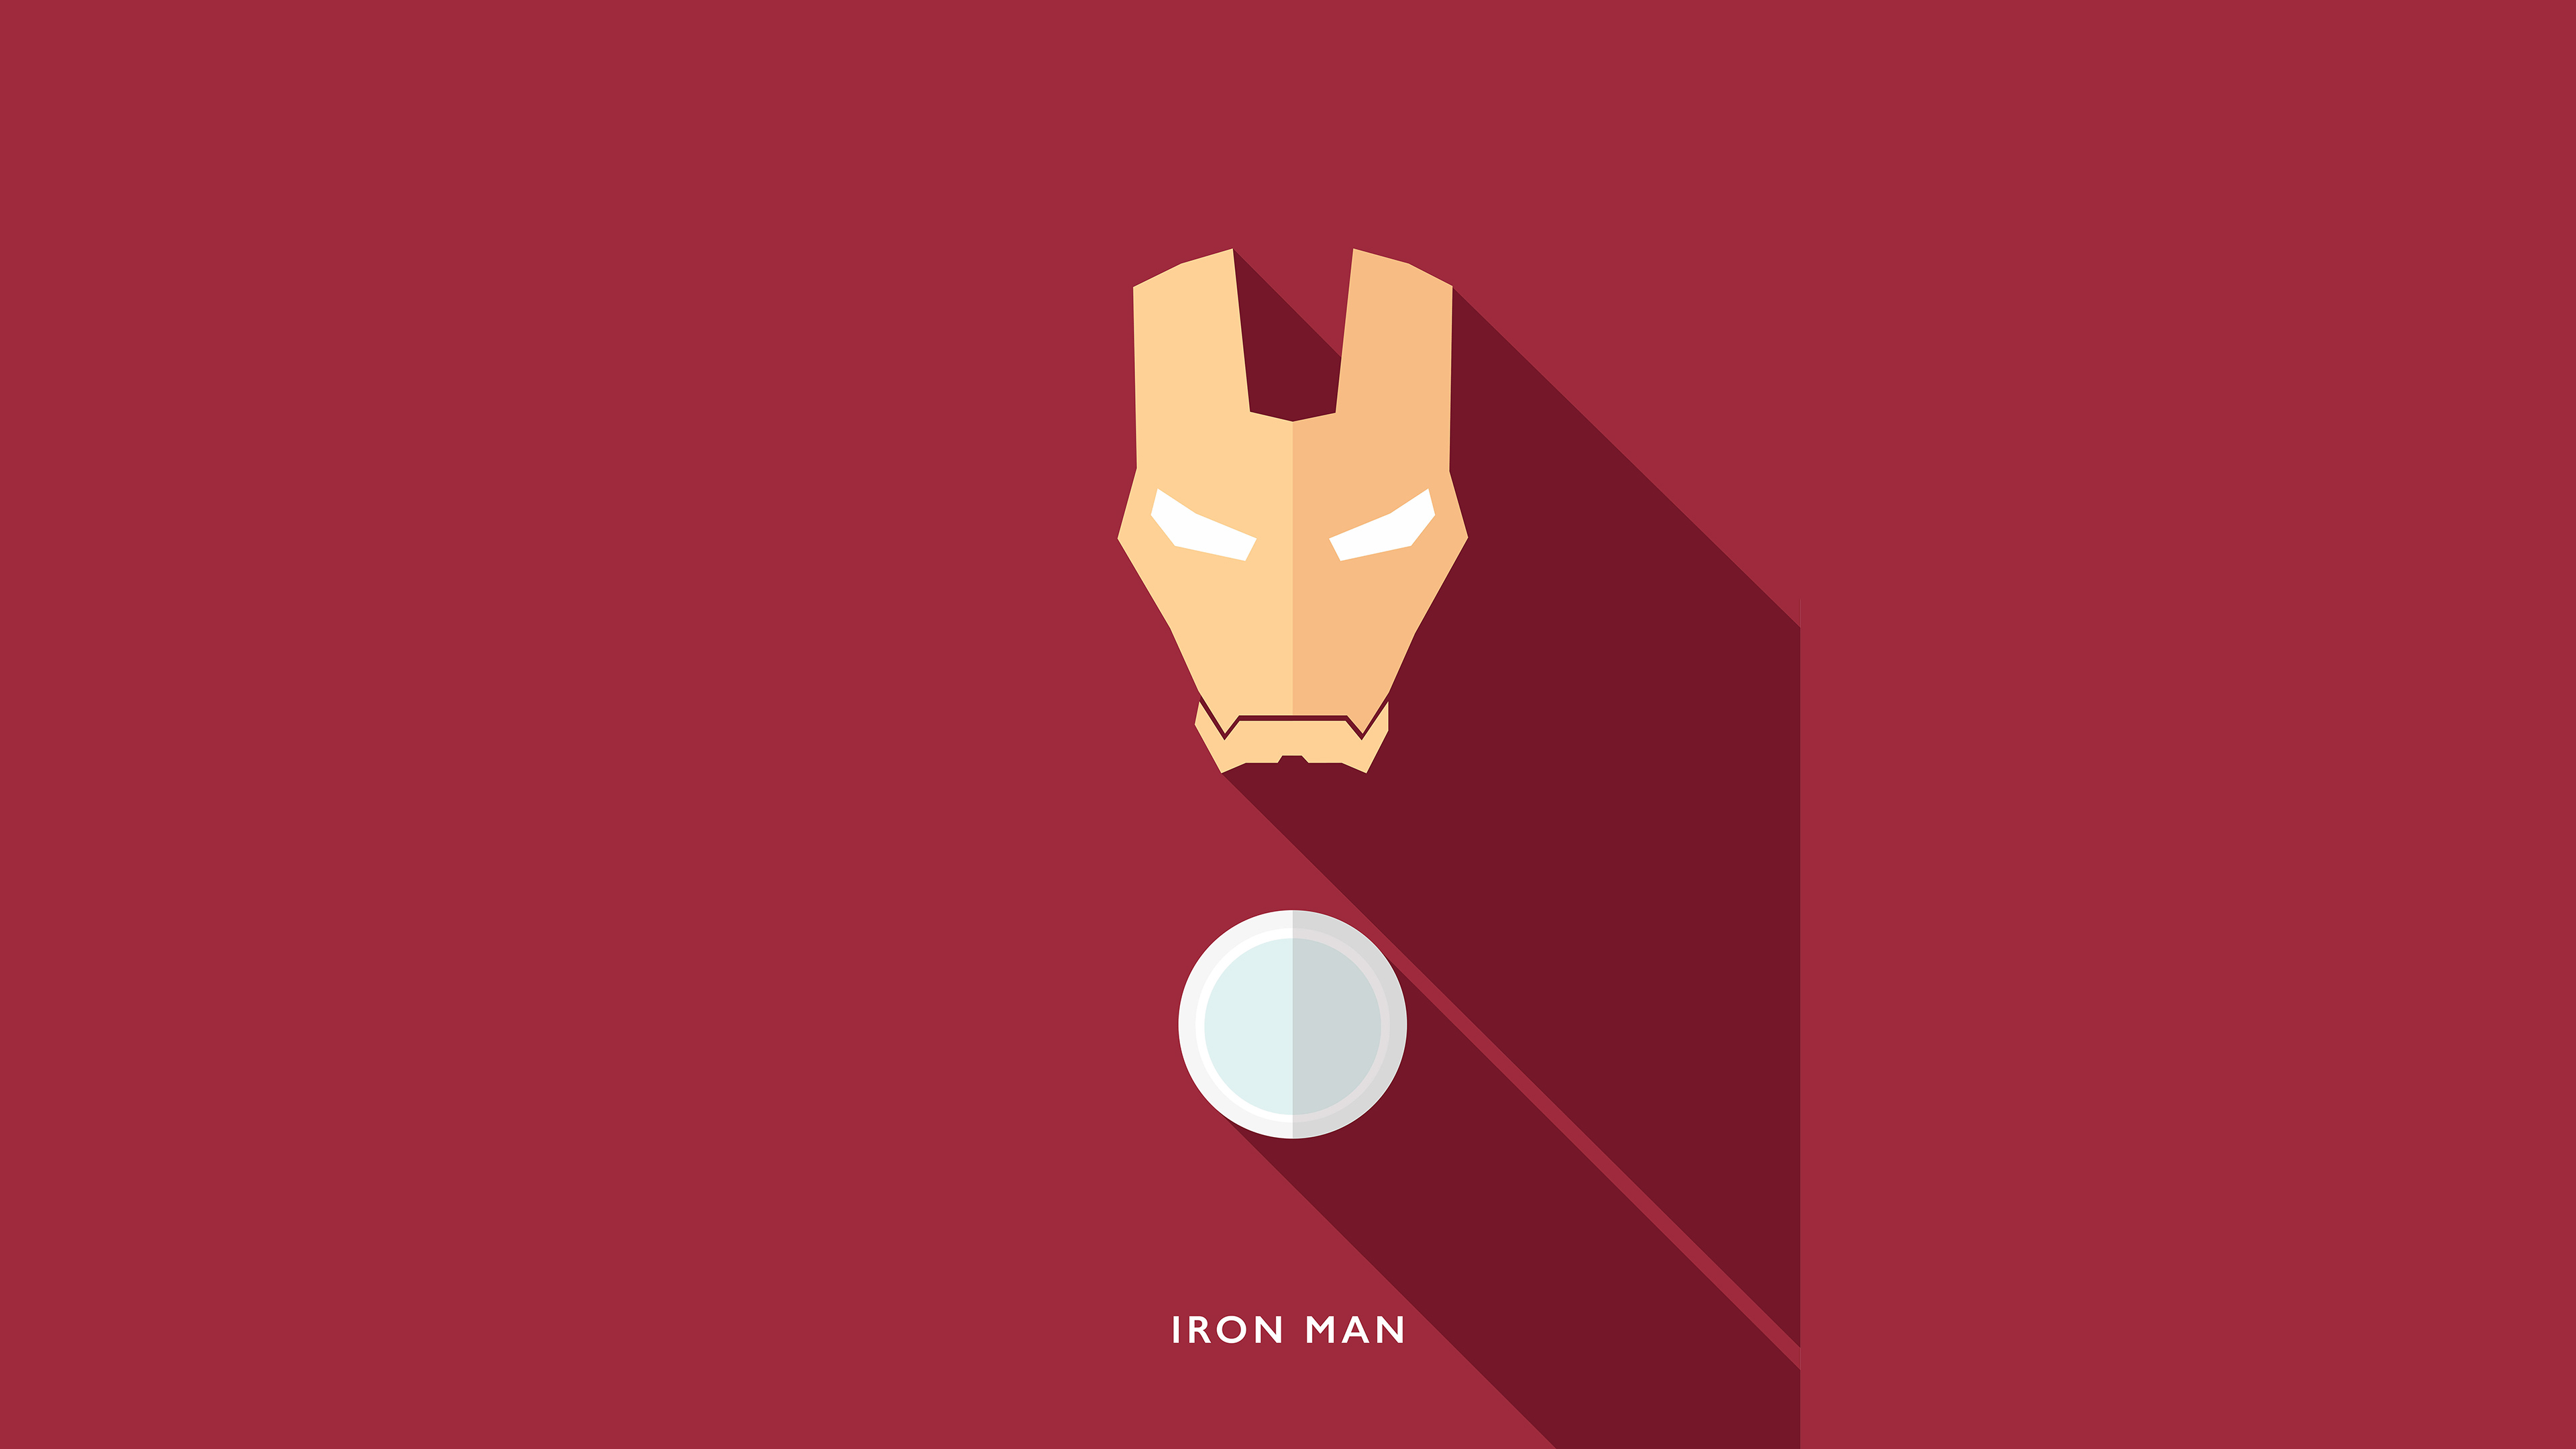 Iron Man Minimalists 4k Hd Superheroes 4k Wallpapers Images Backgrounds Photos And Pictures